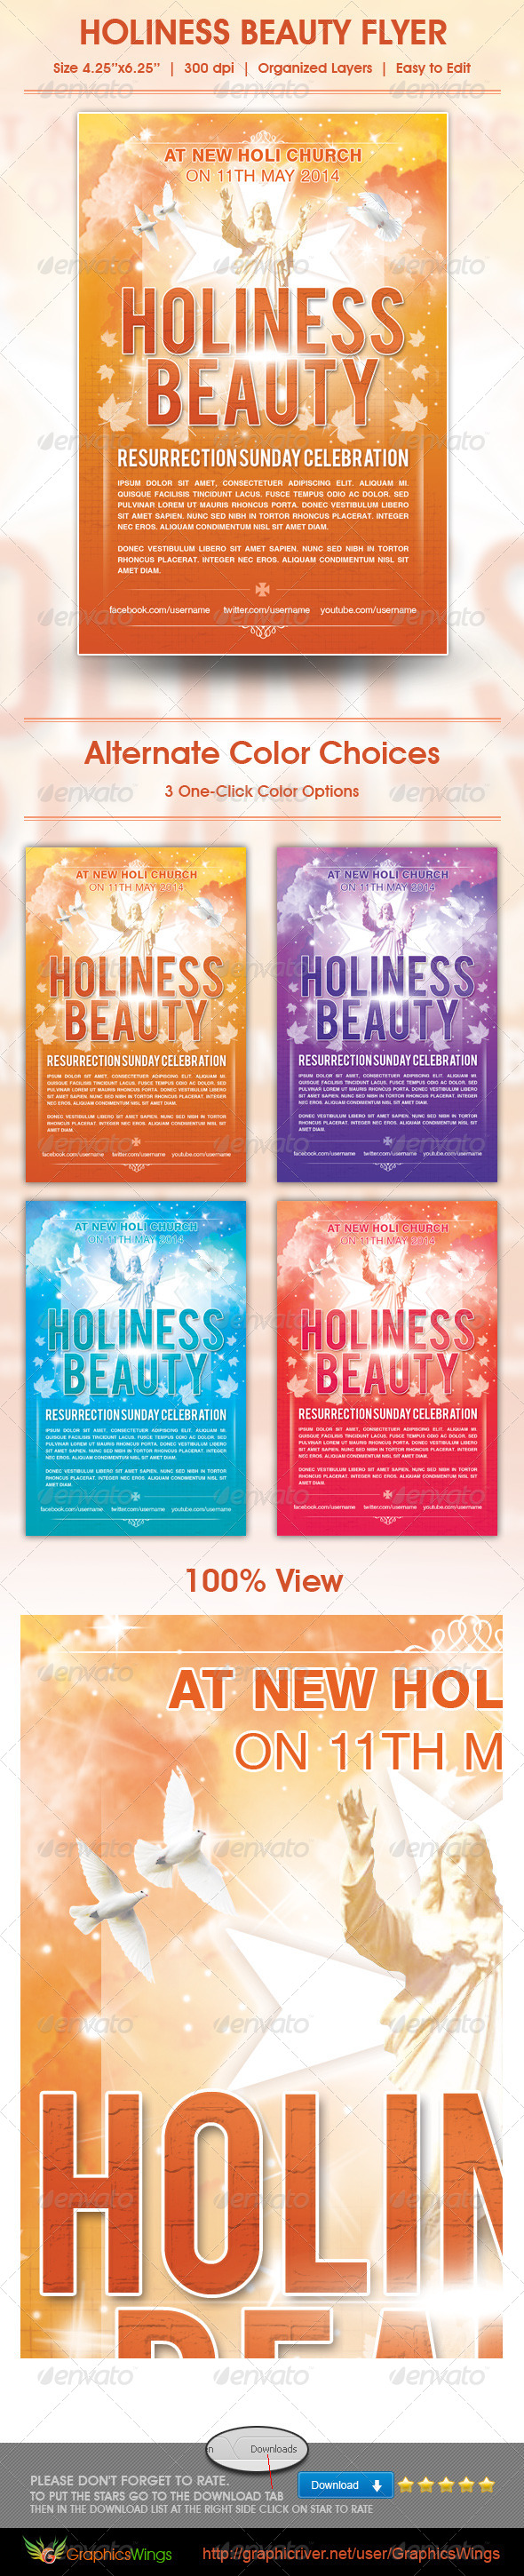 GraphicRiver Holiness Beauty Church Flyer Template 4552592